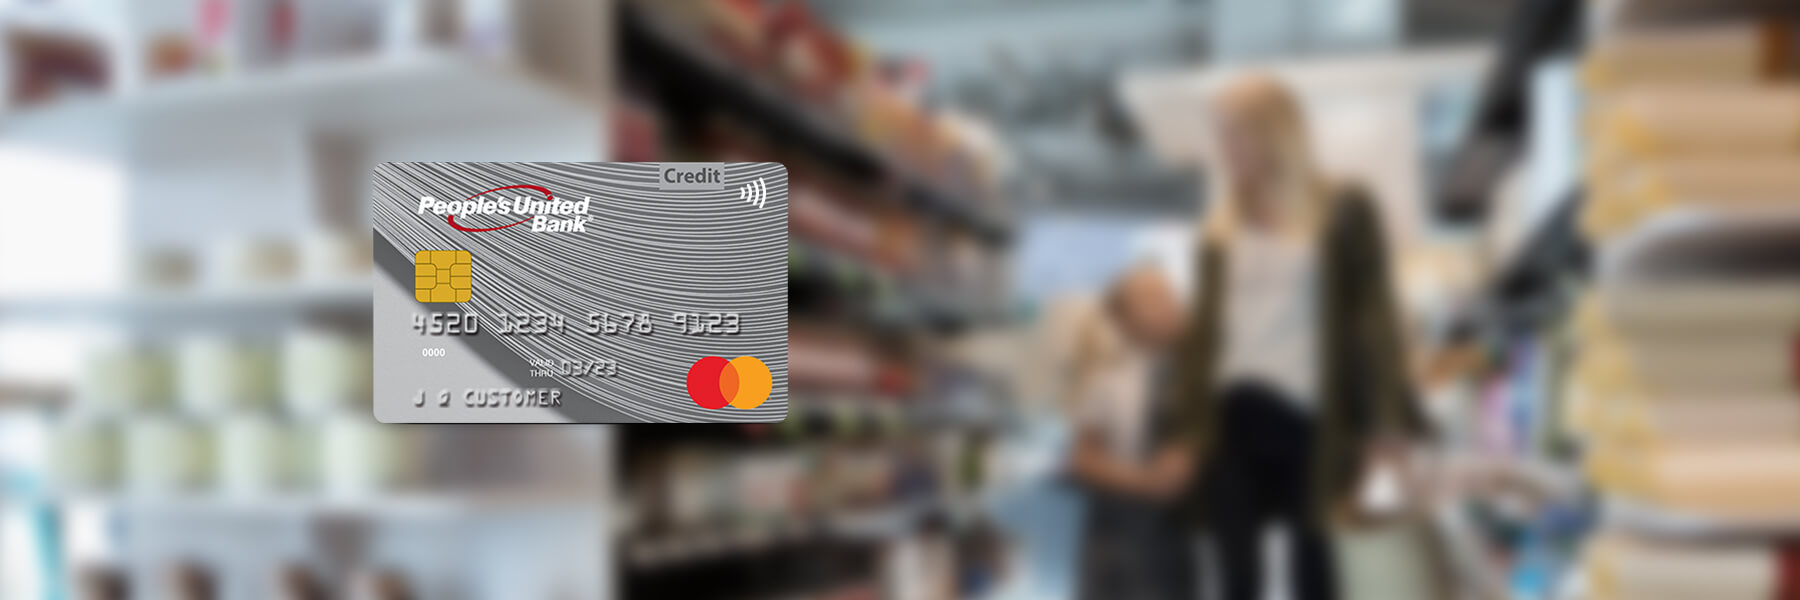 People's United Bank MasterCard Platinum personal credit card on top of a blurred background image of a mother and daughter shopping.